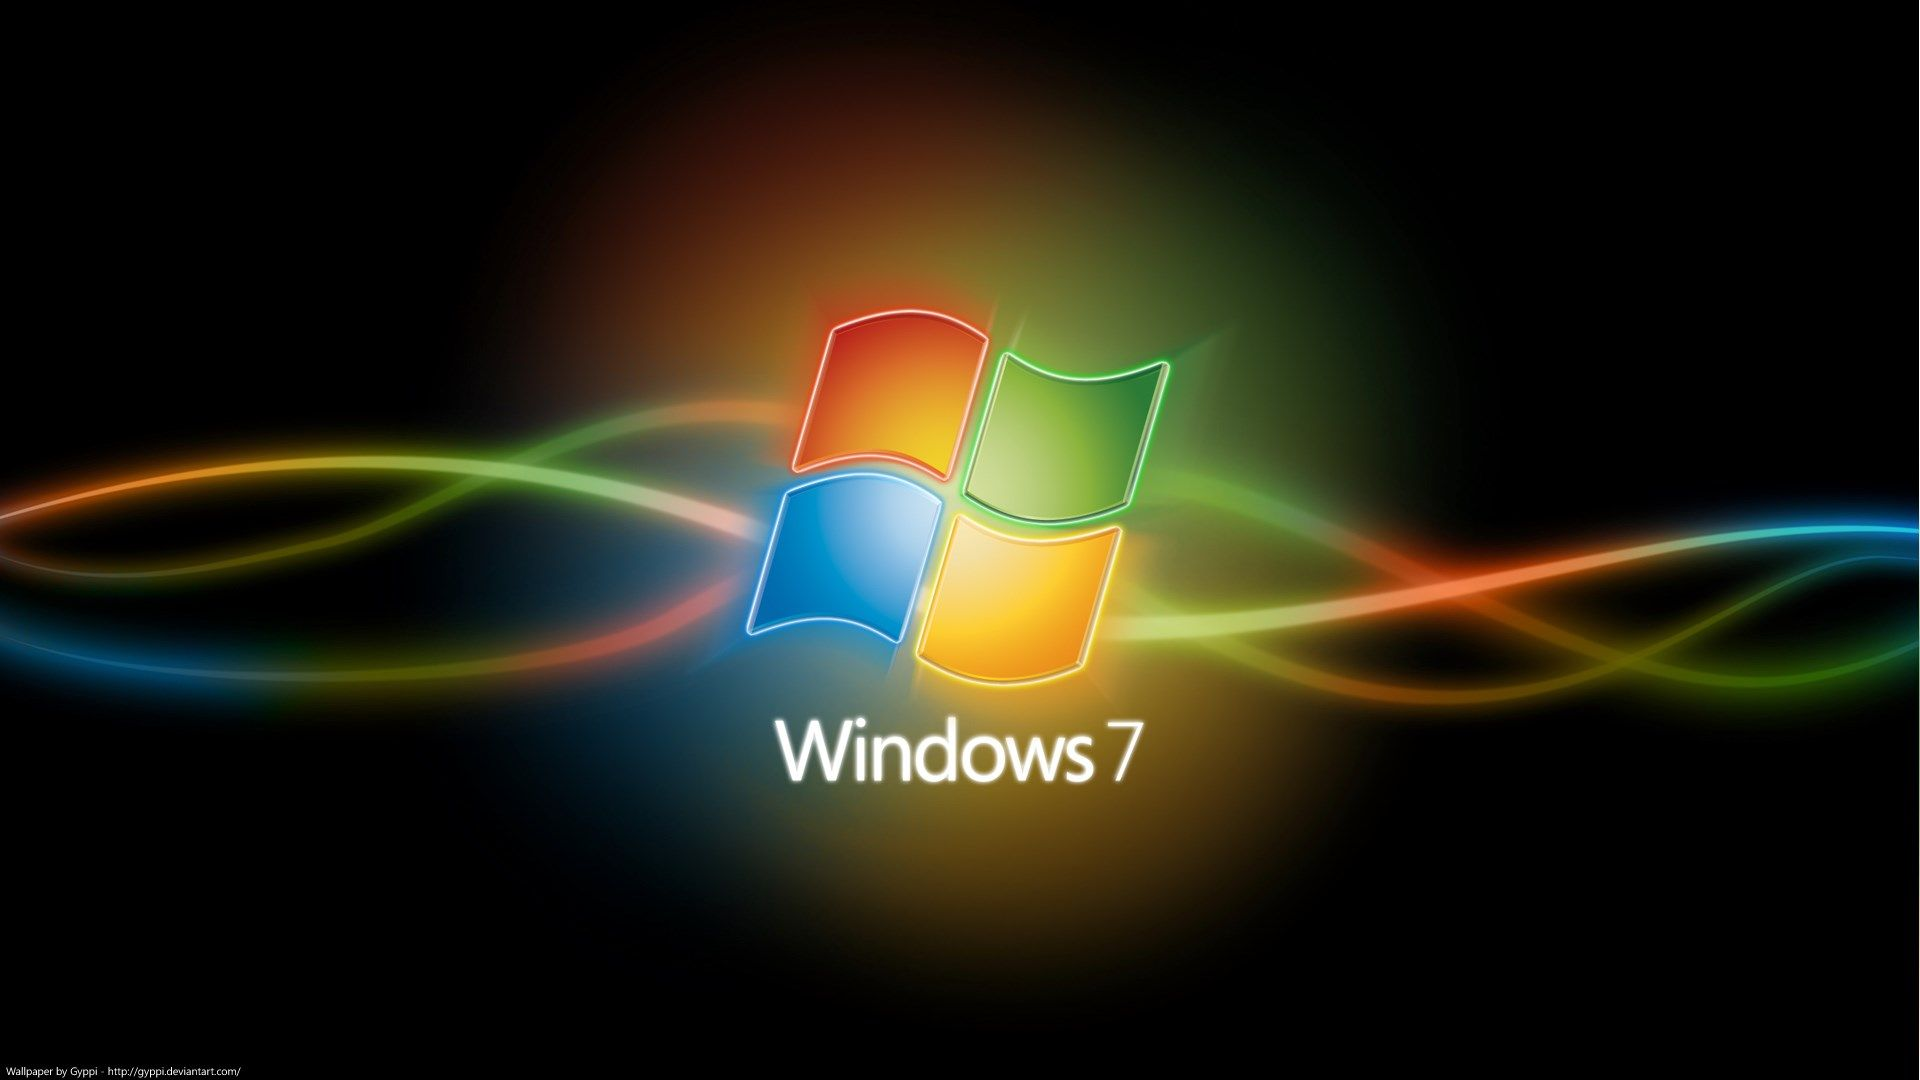 1920x1080 px high resolution wallpapers widescreen windows 7